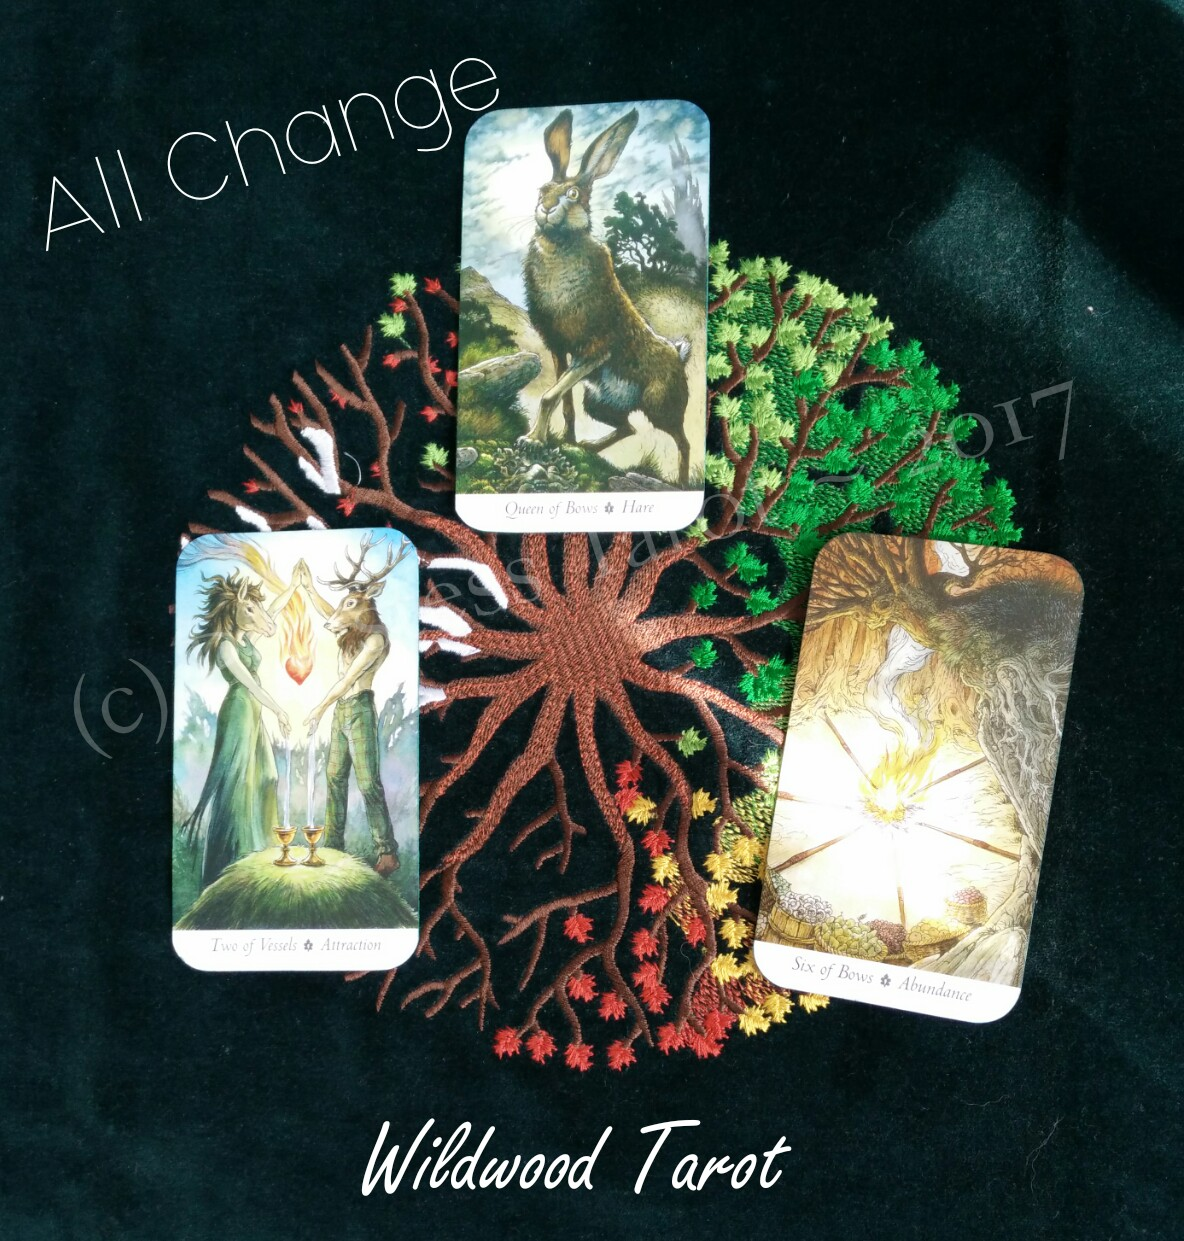 Priestess Tarot : It's All Change for me!